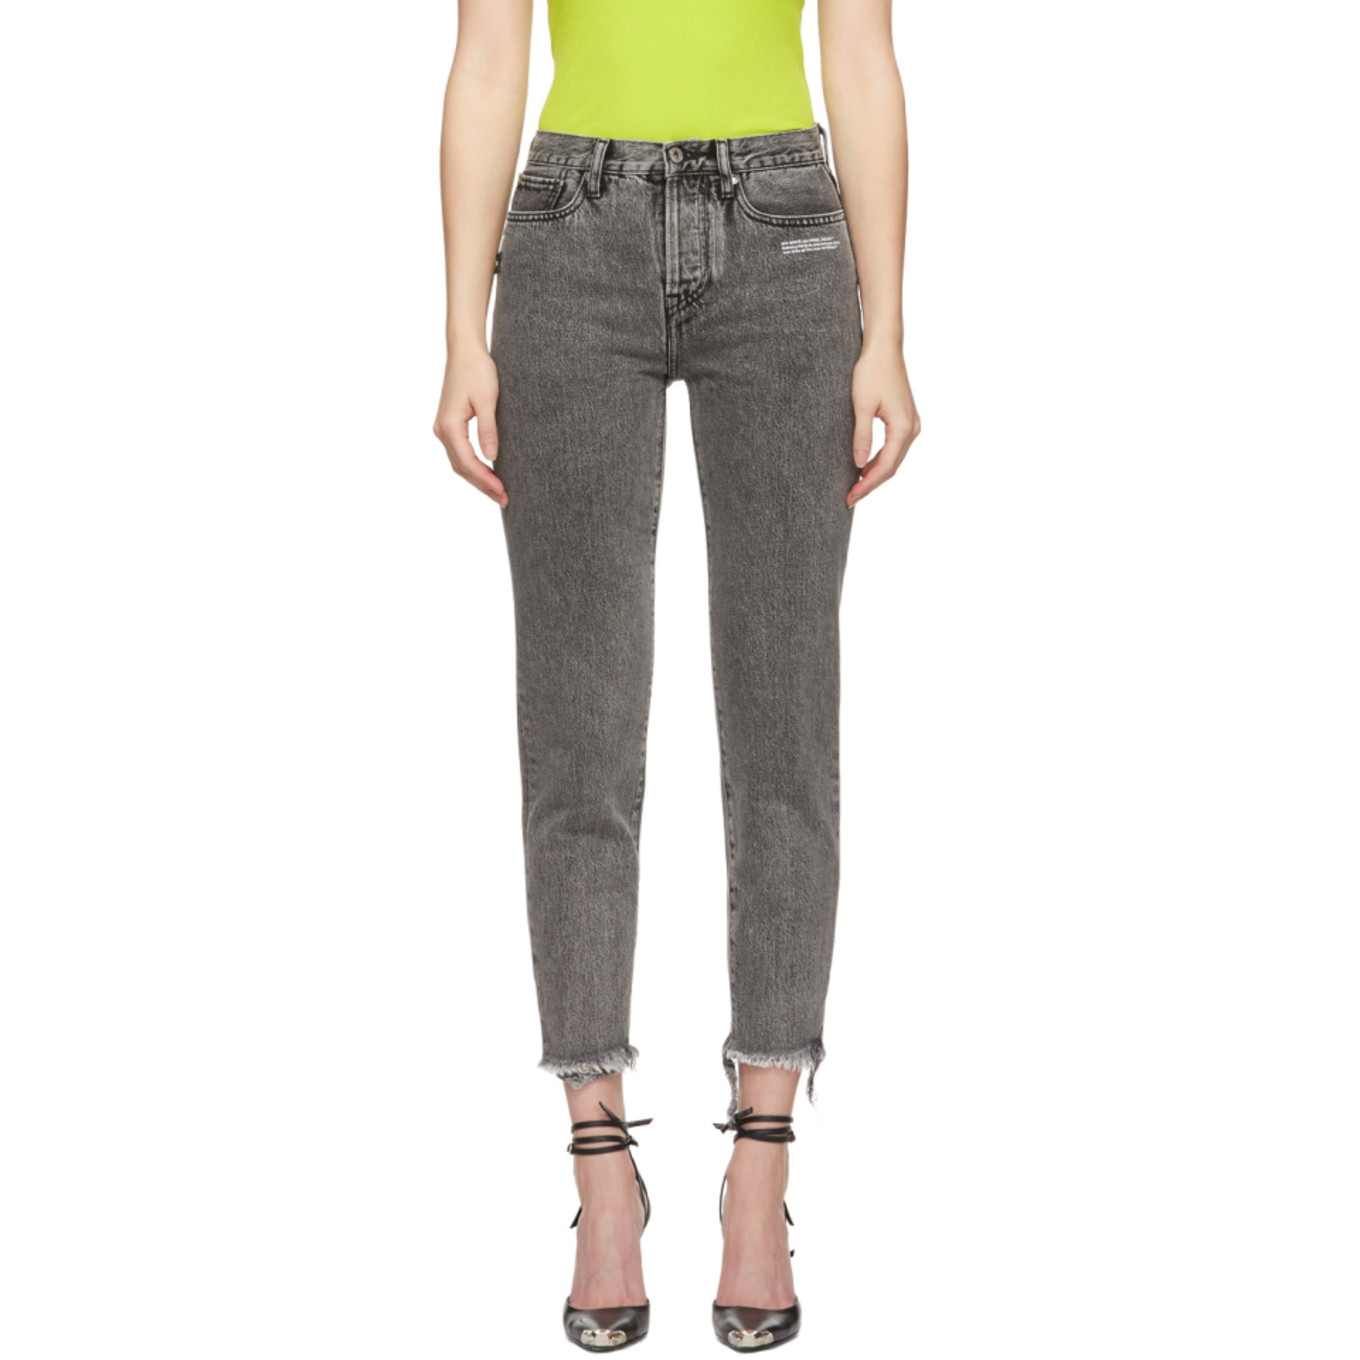 Grey Slim Fit Jeans by Off White